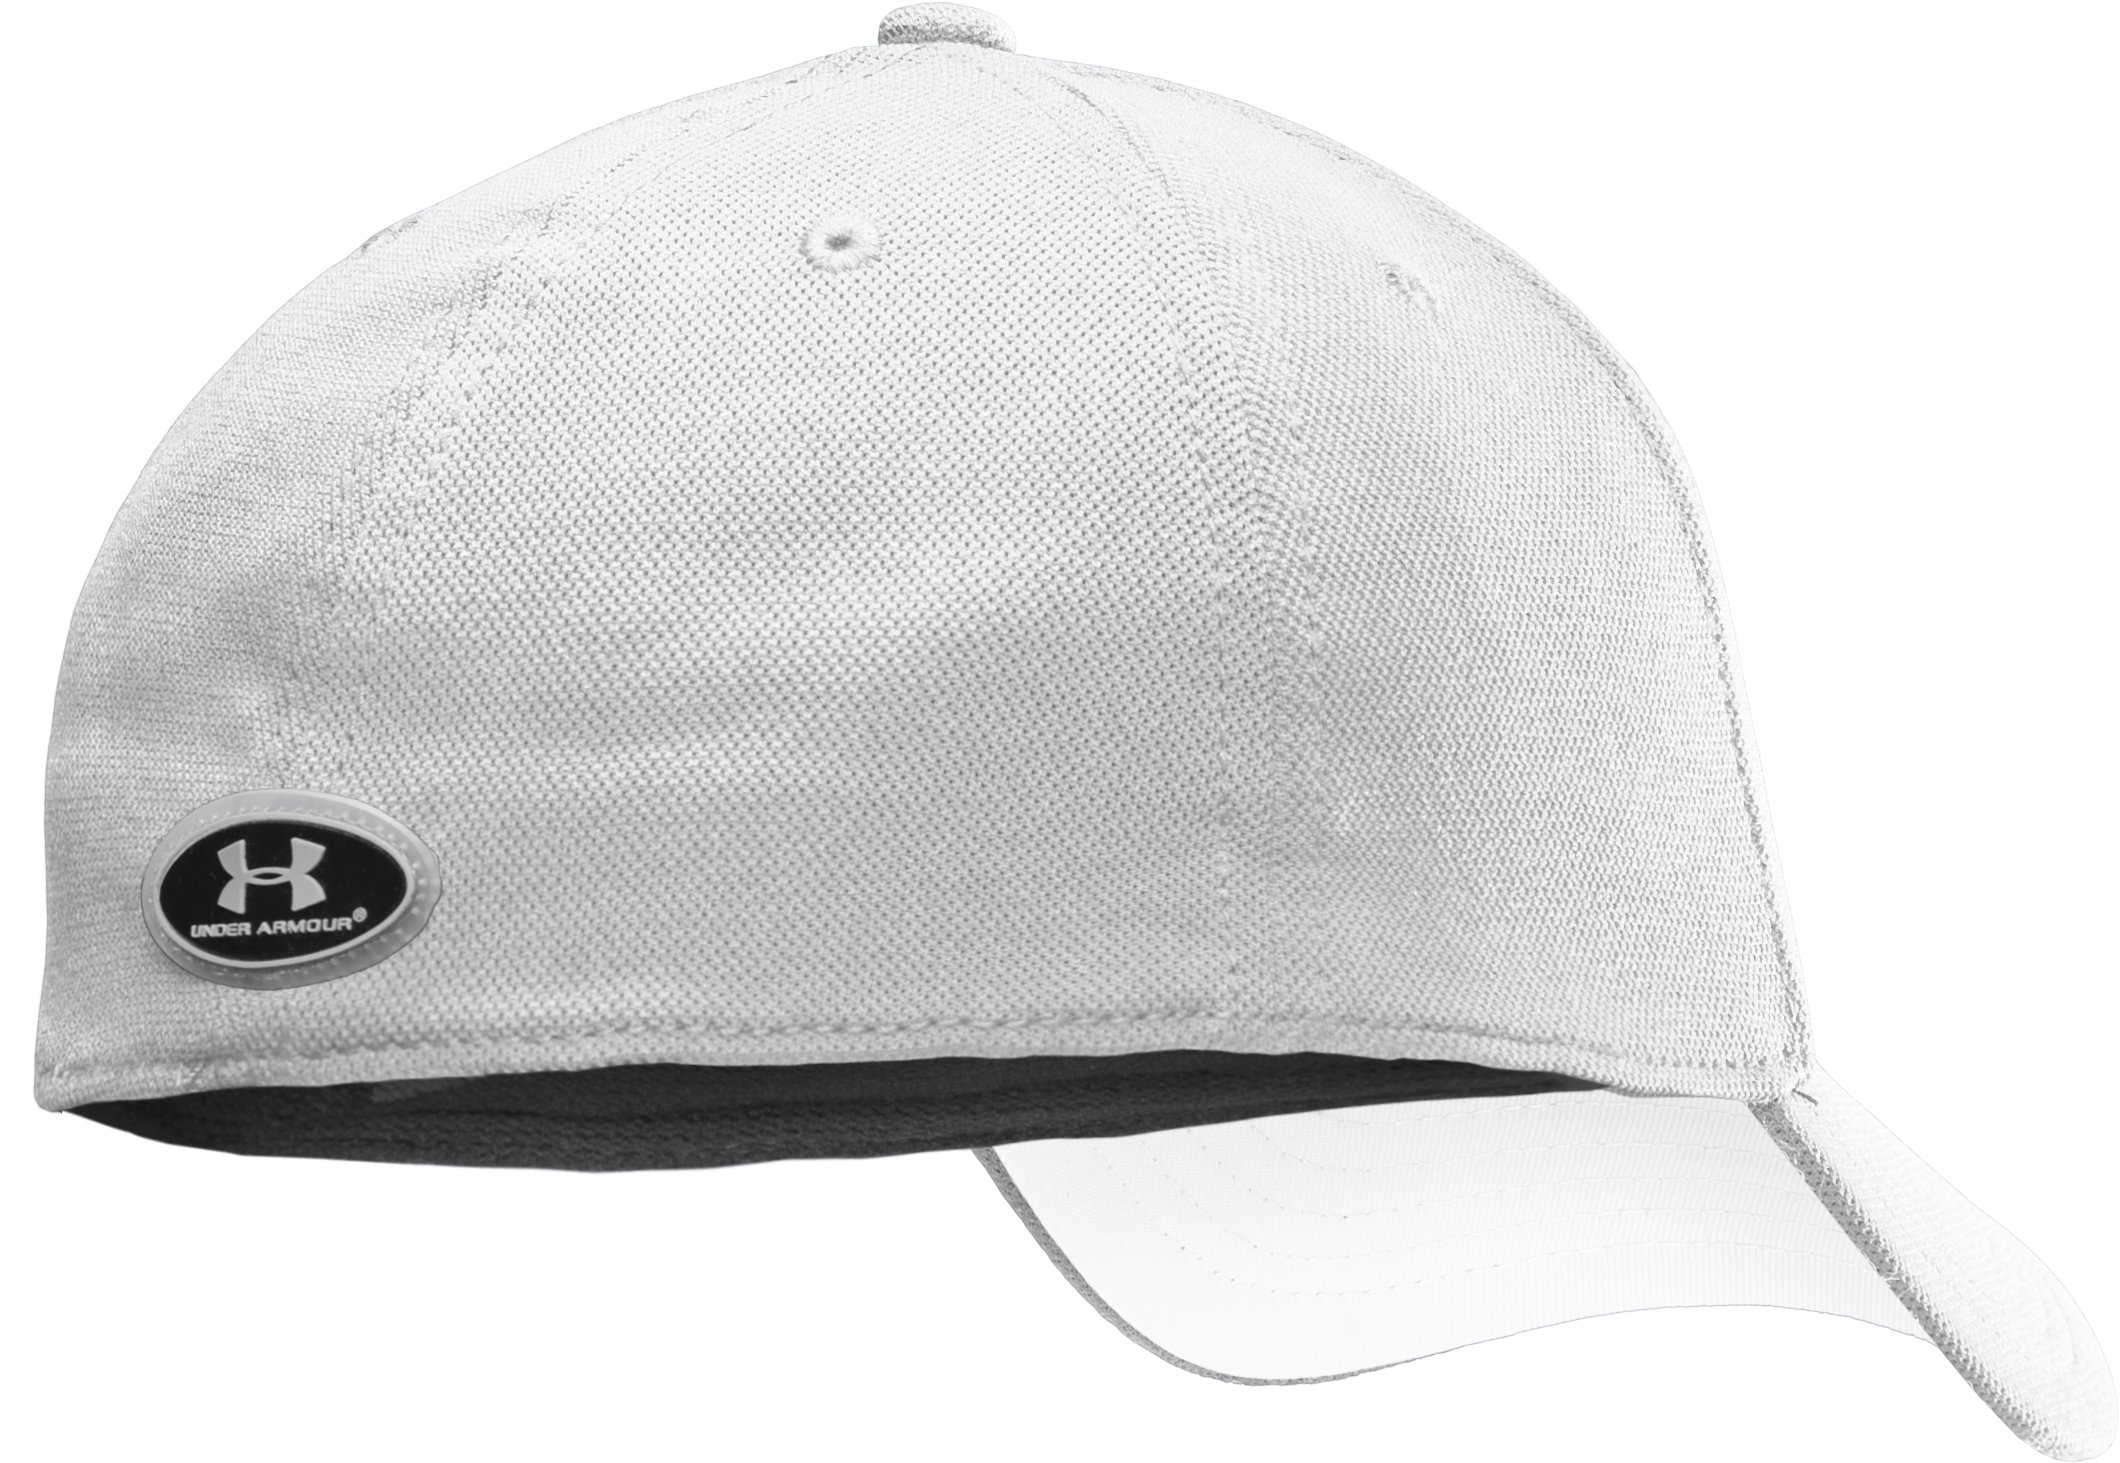 Men's Armour® Stretch Fit Cap, White